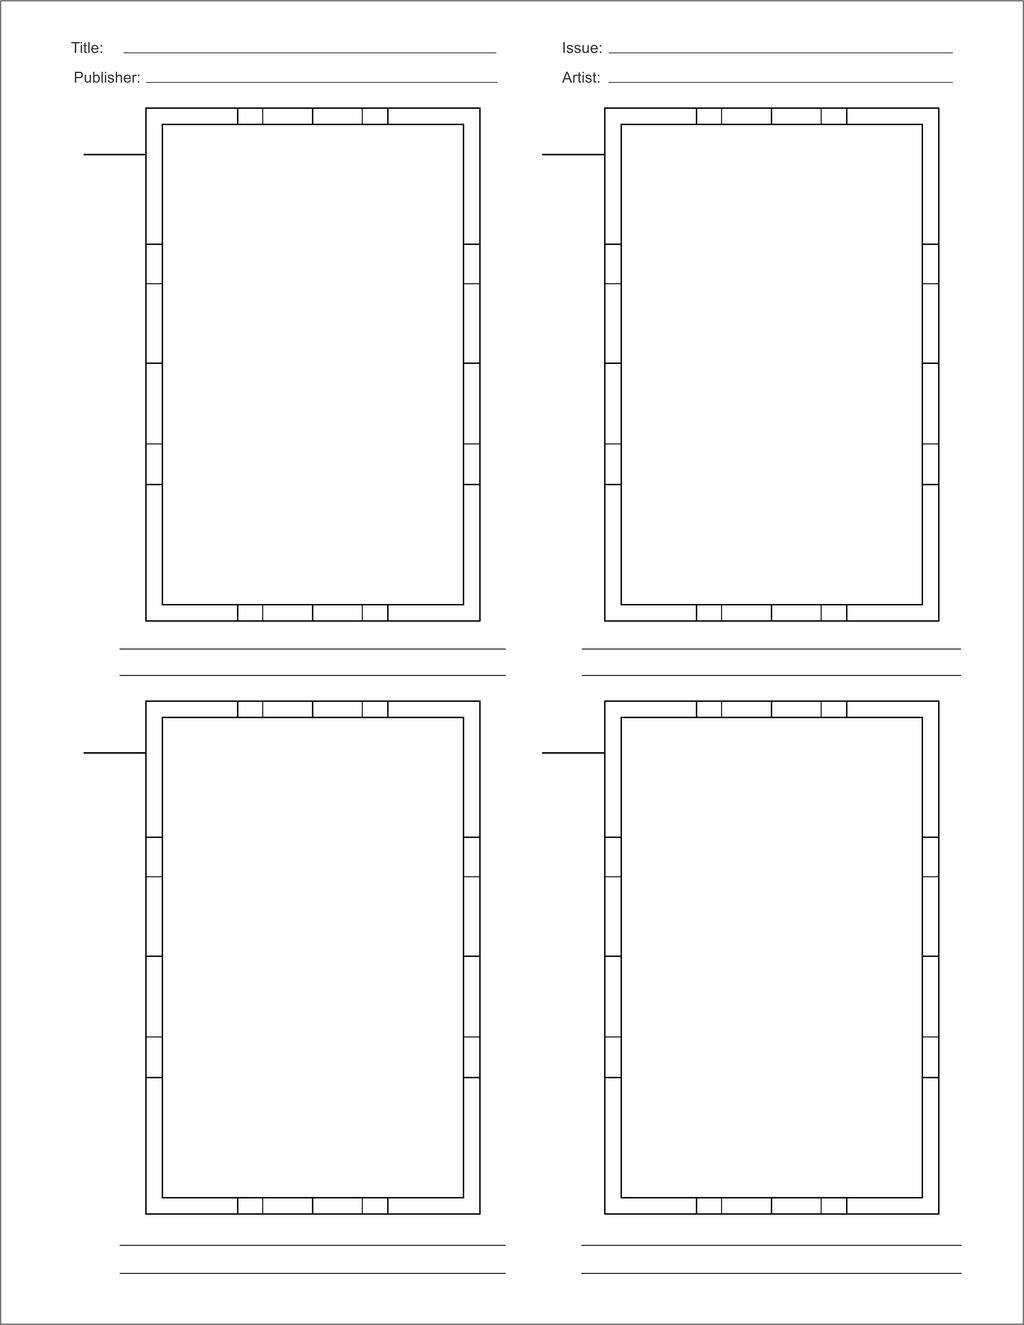 comic book layout template by brianatkins on deviantart